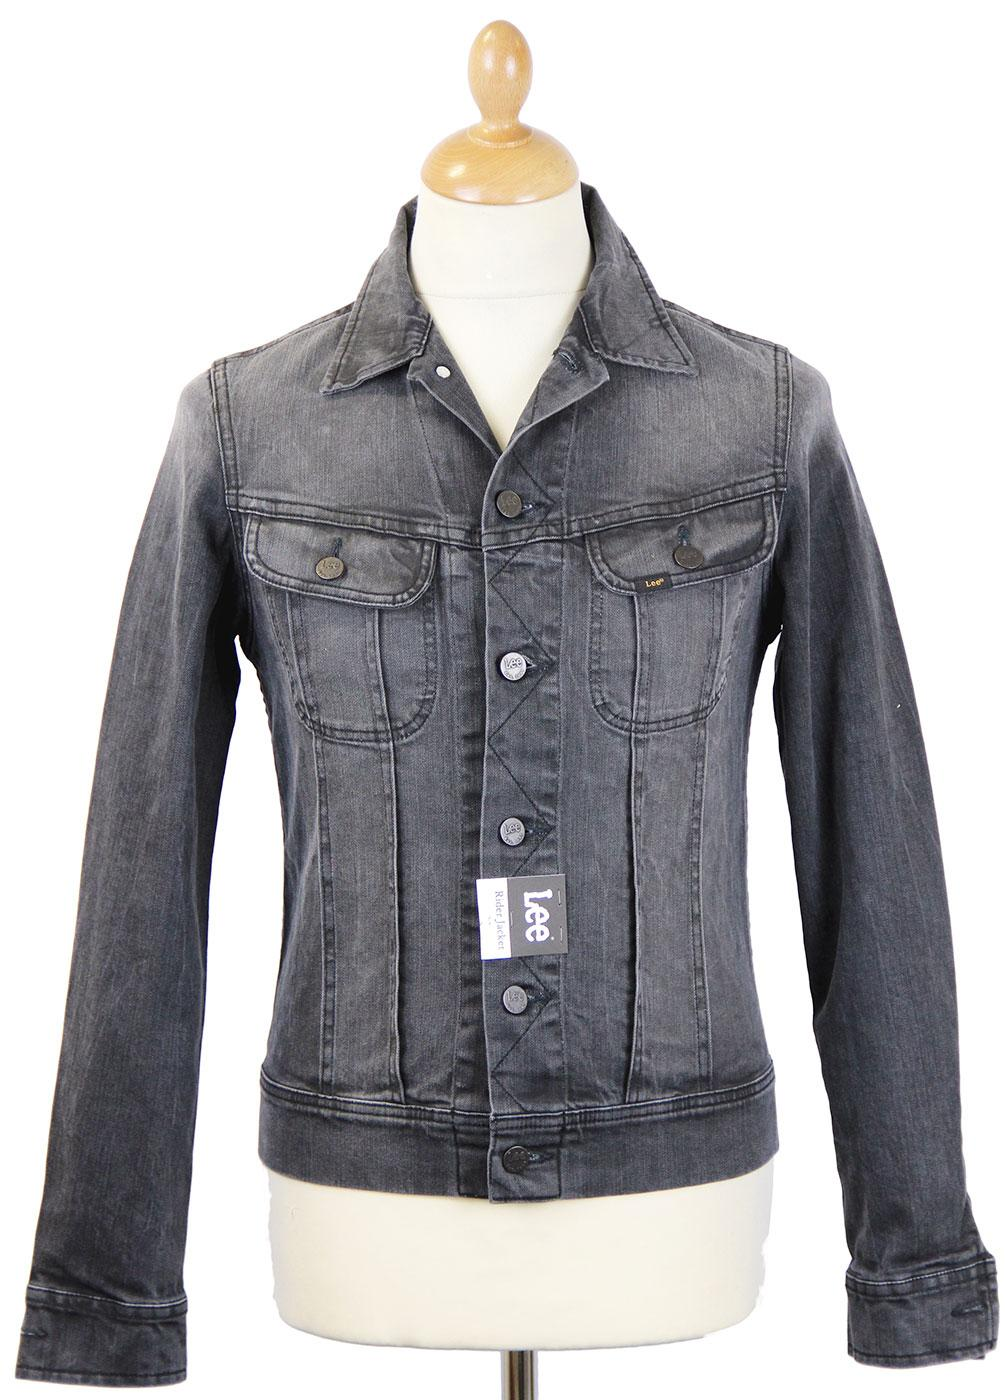 LEE Rider Retro Bruised Black Mod Denim Jacket BB